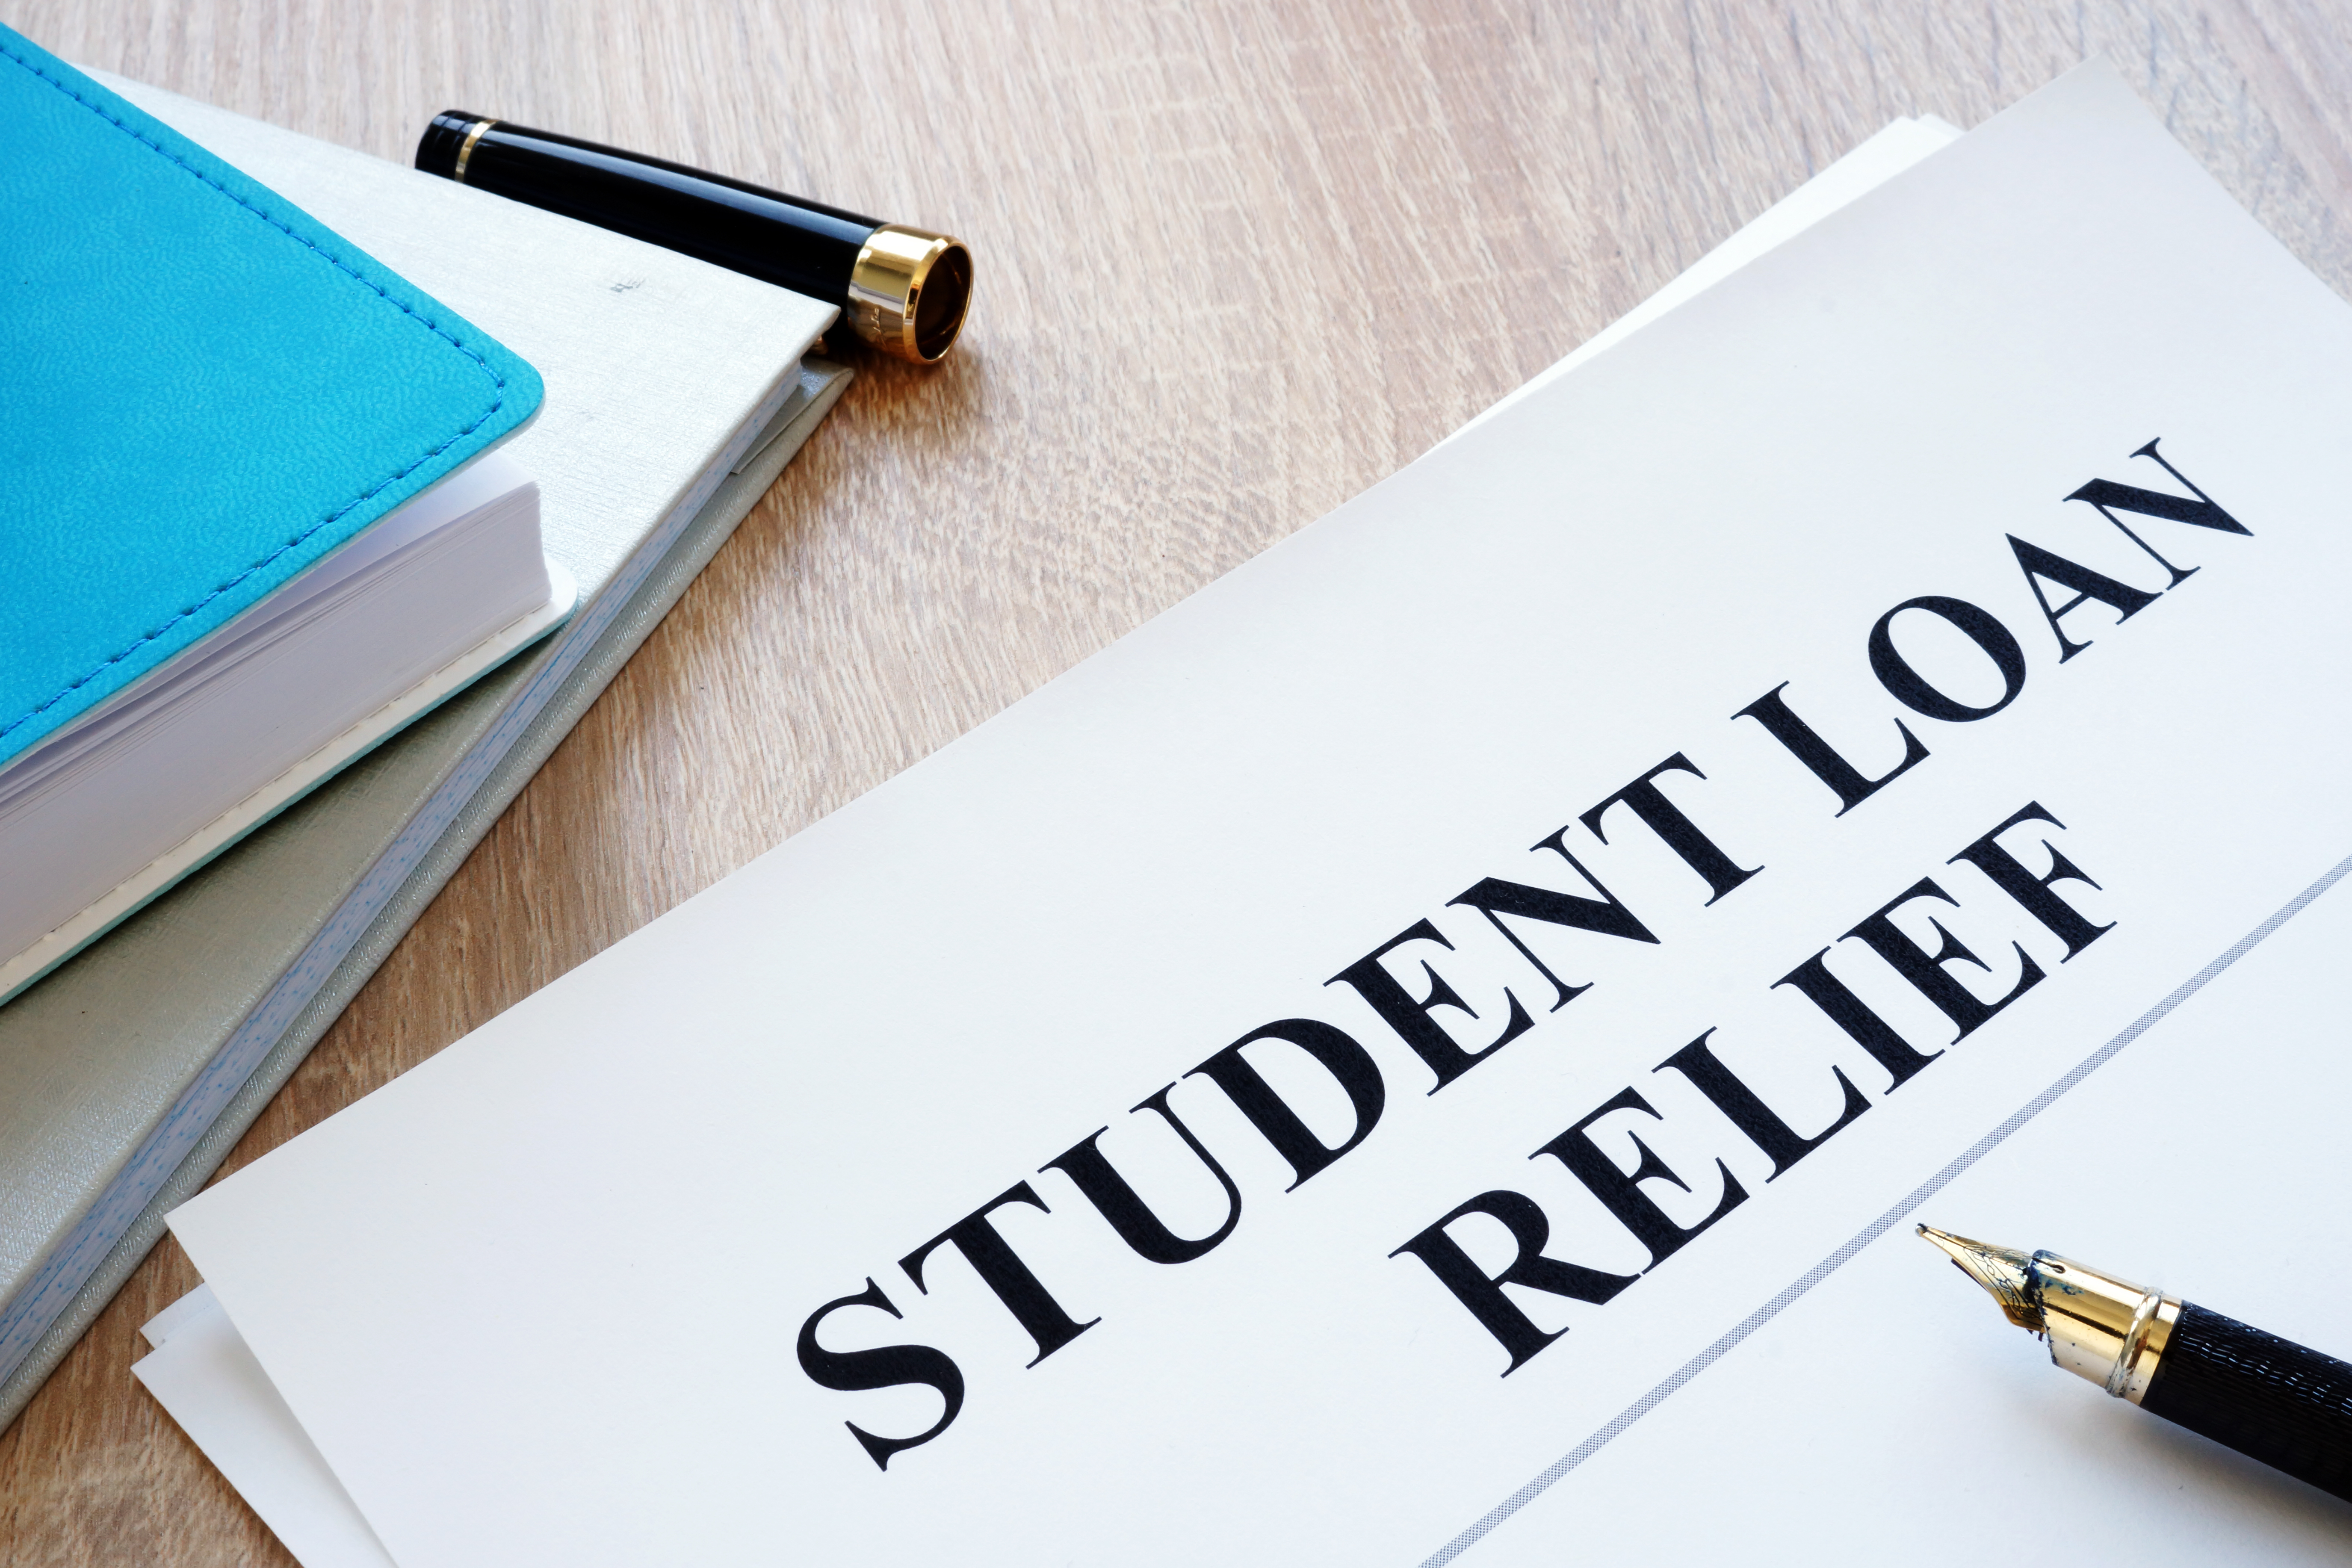 Student loan relief papers on the desk. - Image